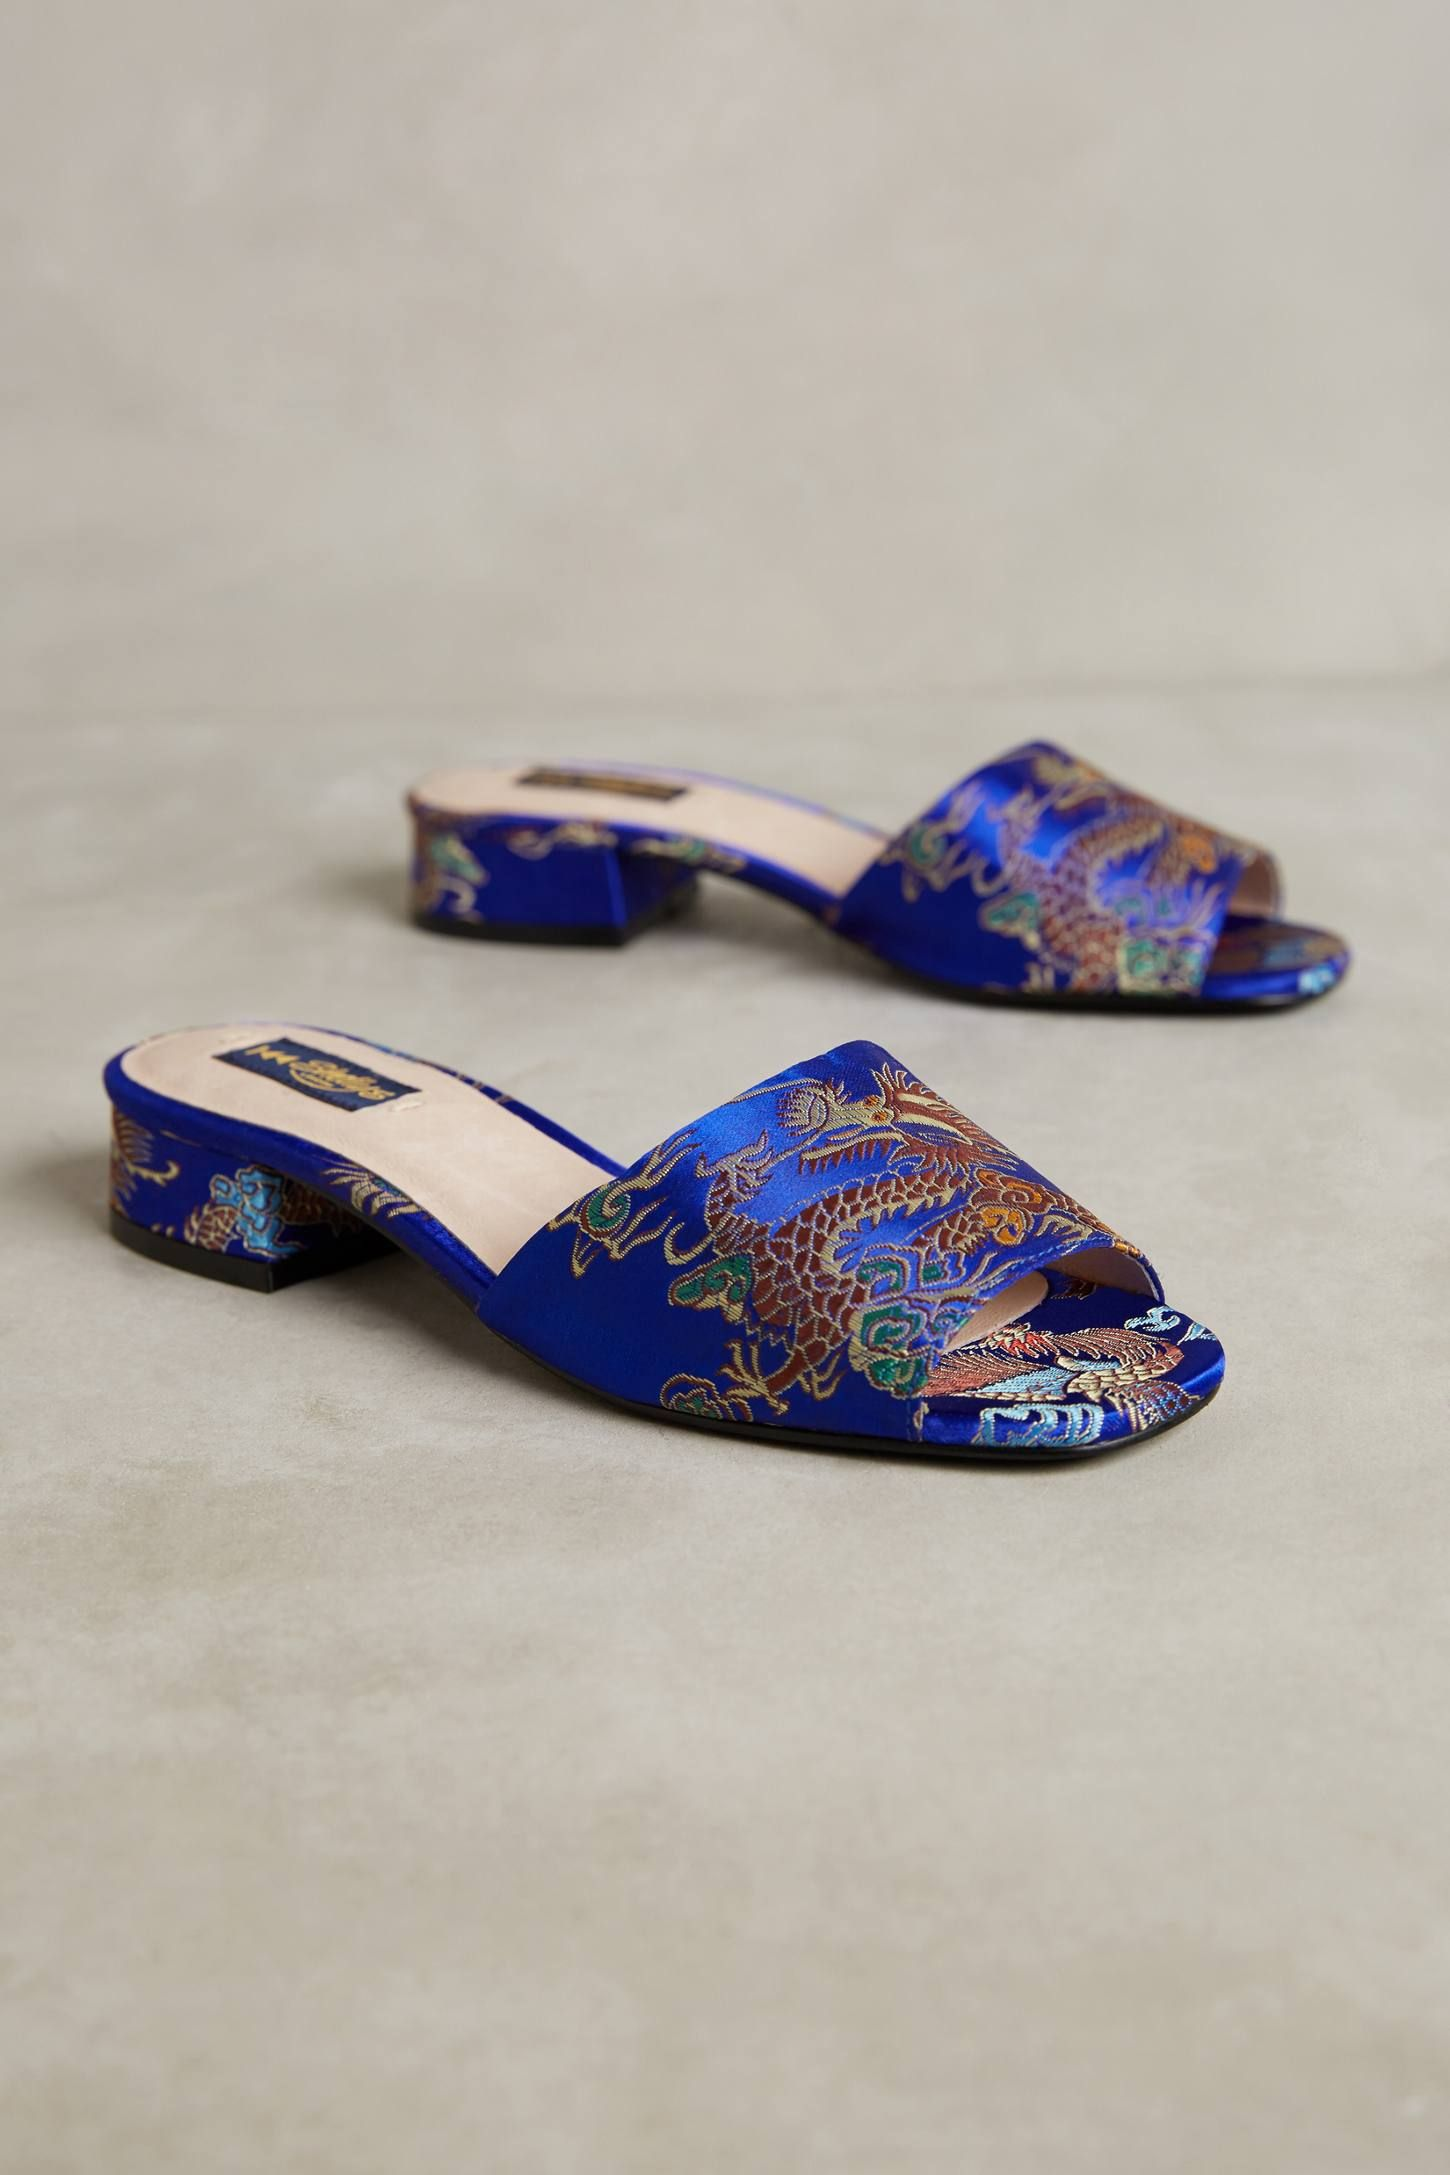 Shop the Shelly's London Brocade Slide Sandals and more Anthropologie at Anthropologie today. Read customer reviews, discover product details and more.